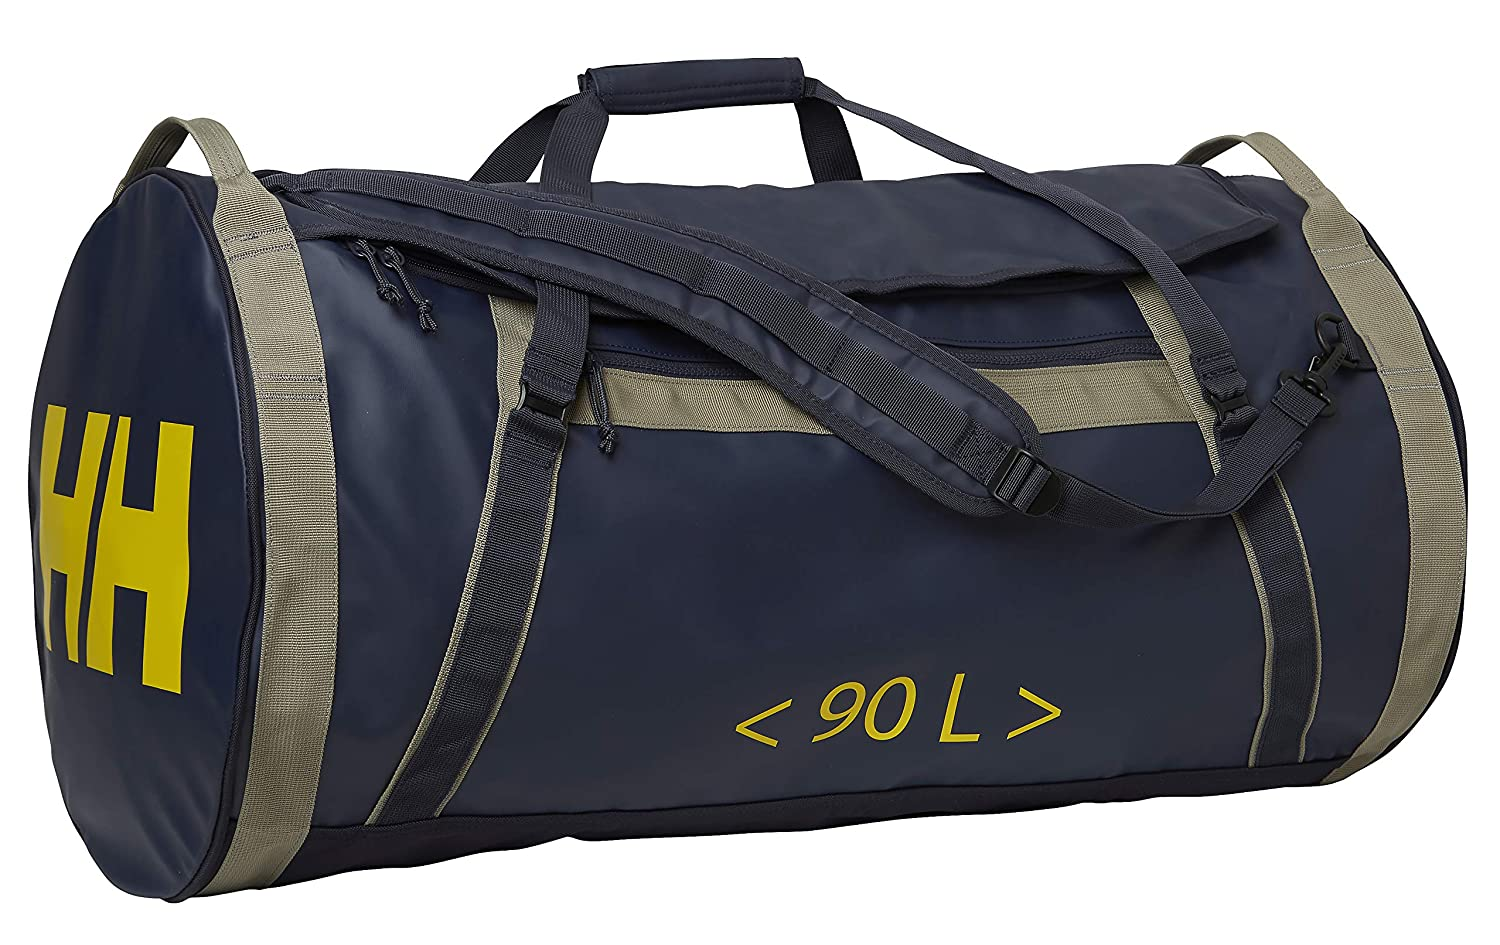 Helly Hansen 68003 Sac Mixte Sac porté Main Mixte Adulte Bleu (Evening Blue) 90x60x90 cm (W x H L)